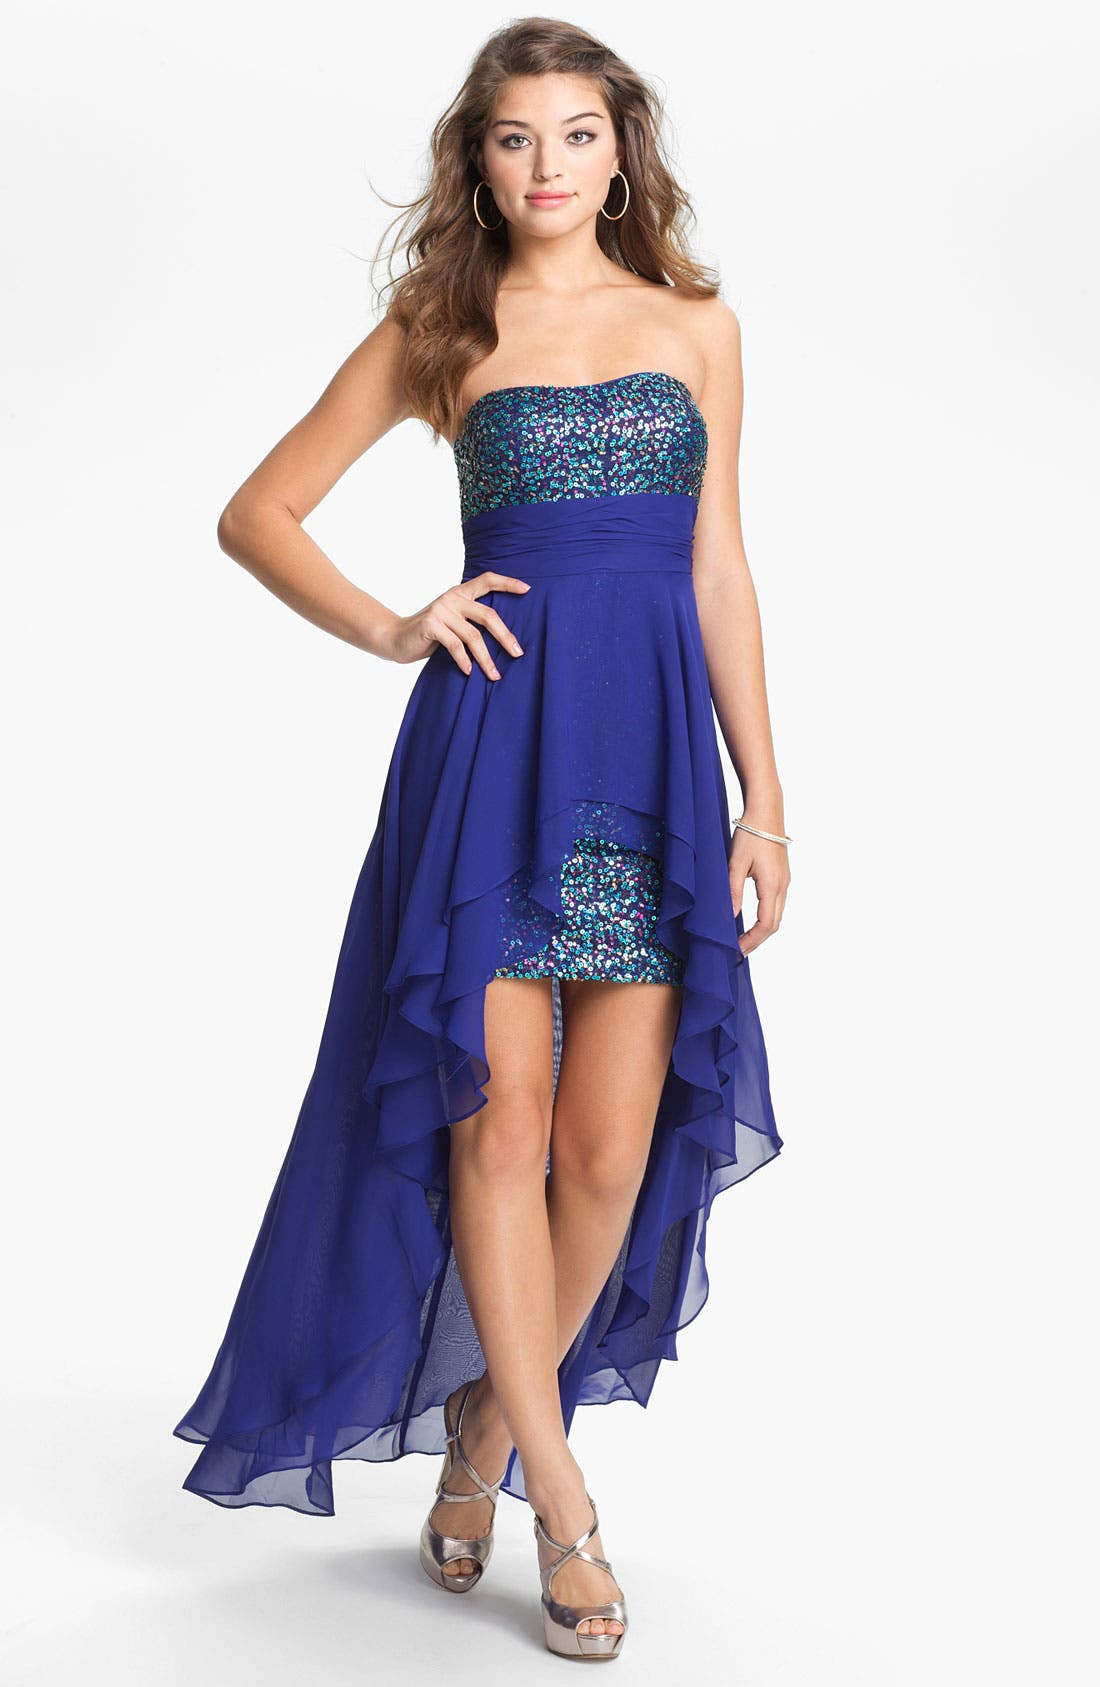 Alternate Image 1 Selected - Hailey Logan Chiffon Overlay Body-Con Dress (Juniors) (Online Exclusive)